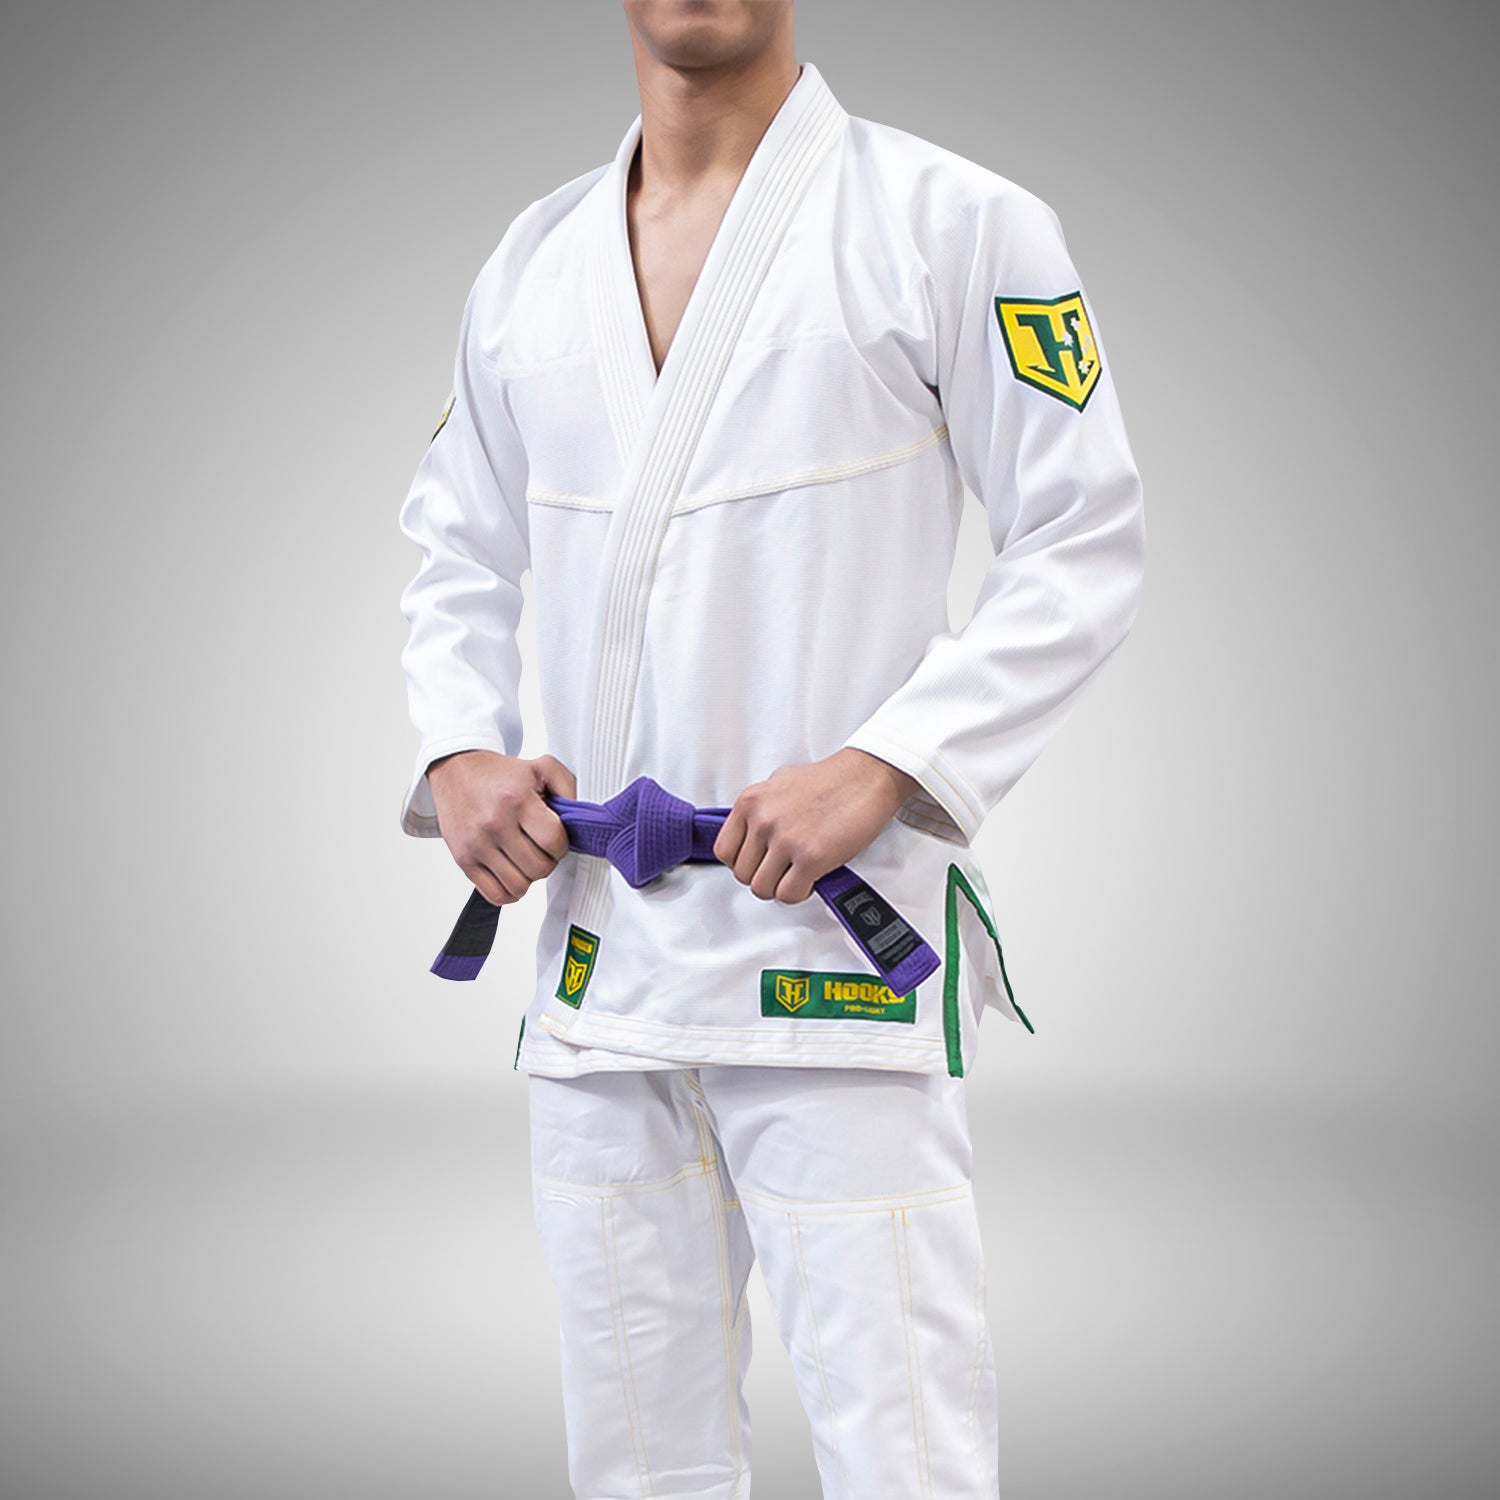 Hooks Pro Light Jiu Jitsu Gi -  Limited Edition Green & Gold